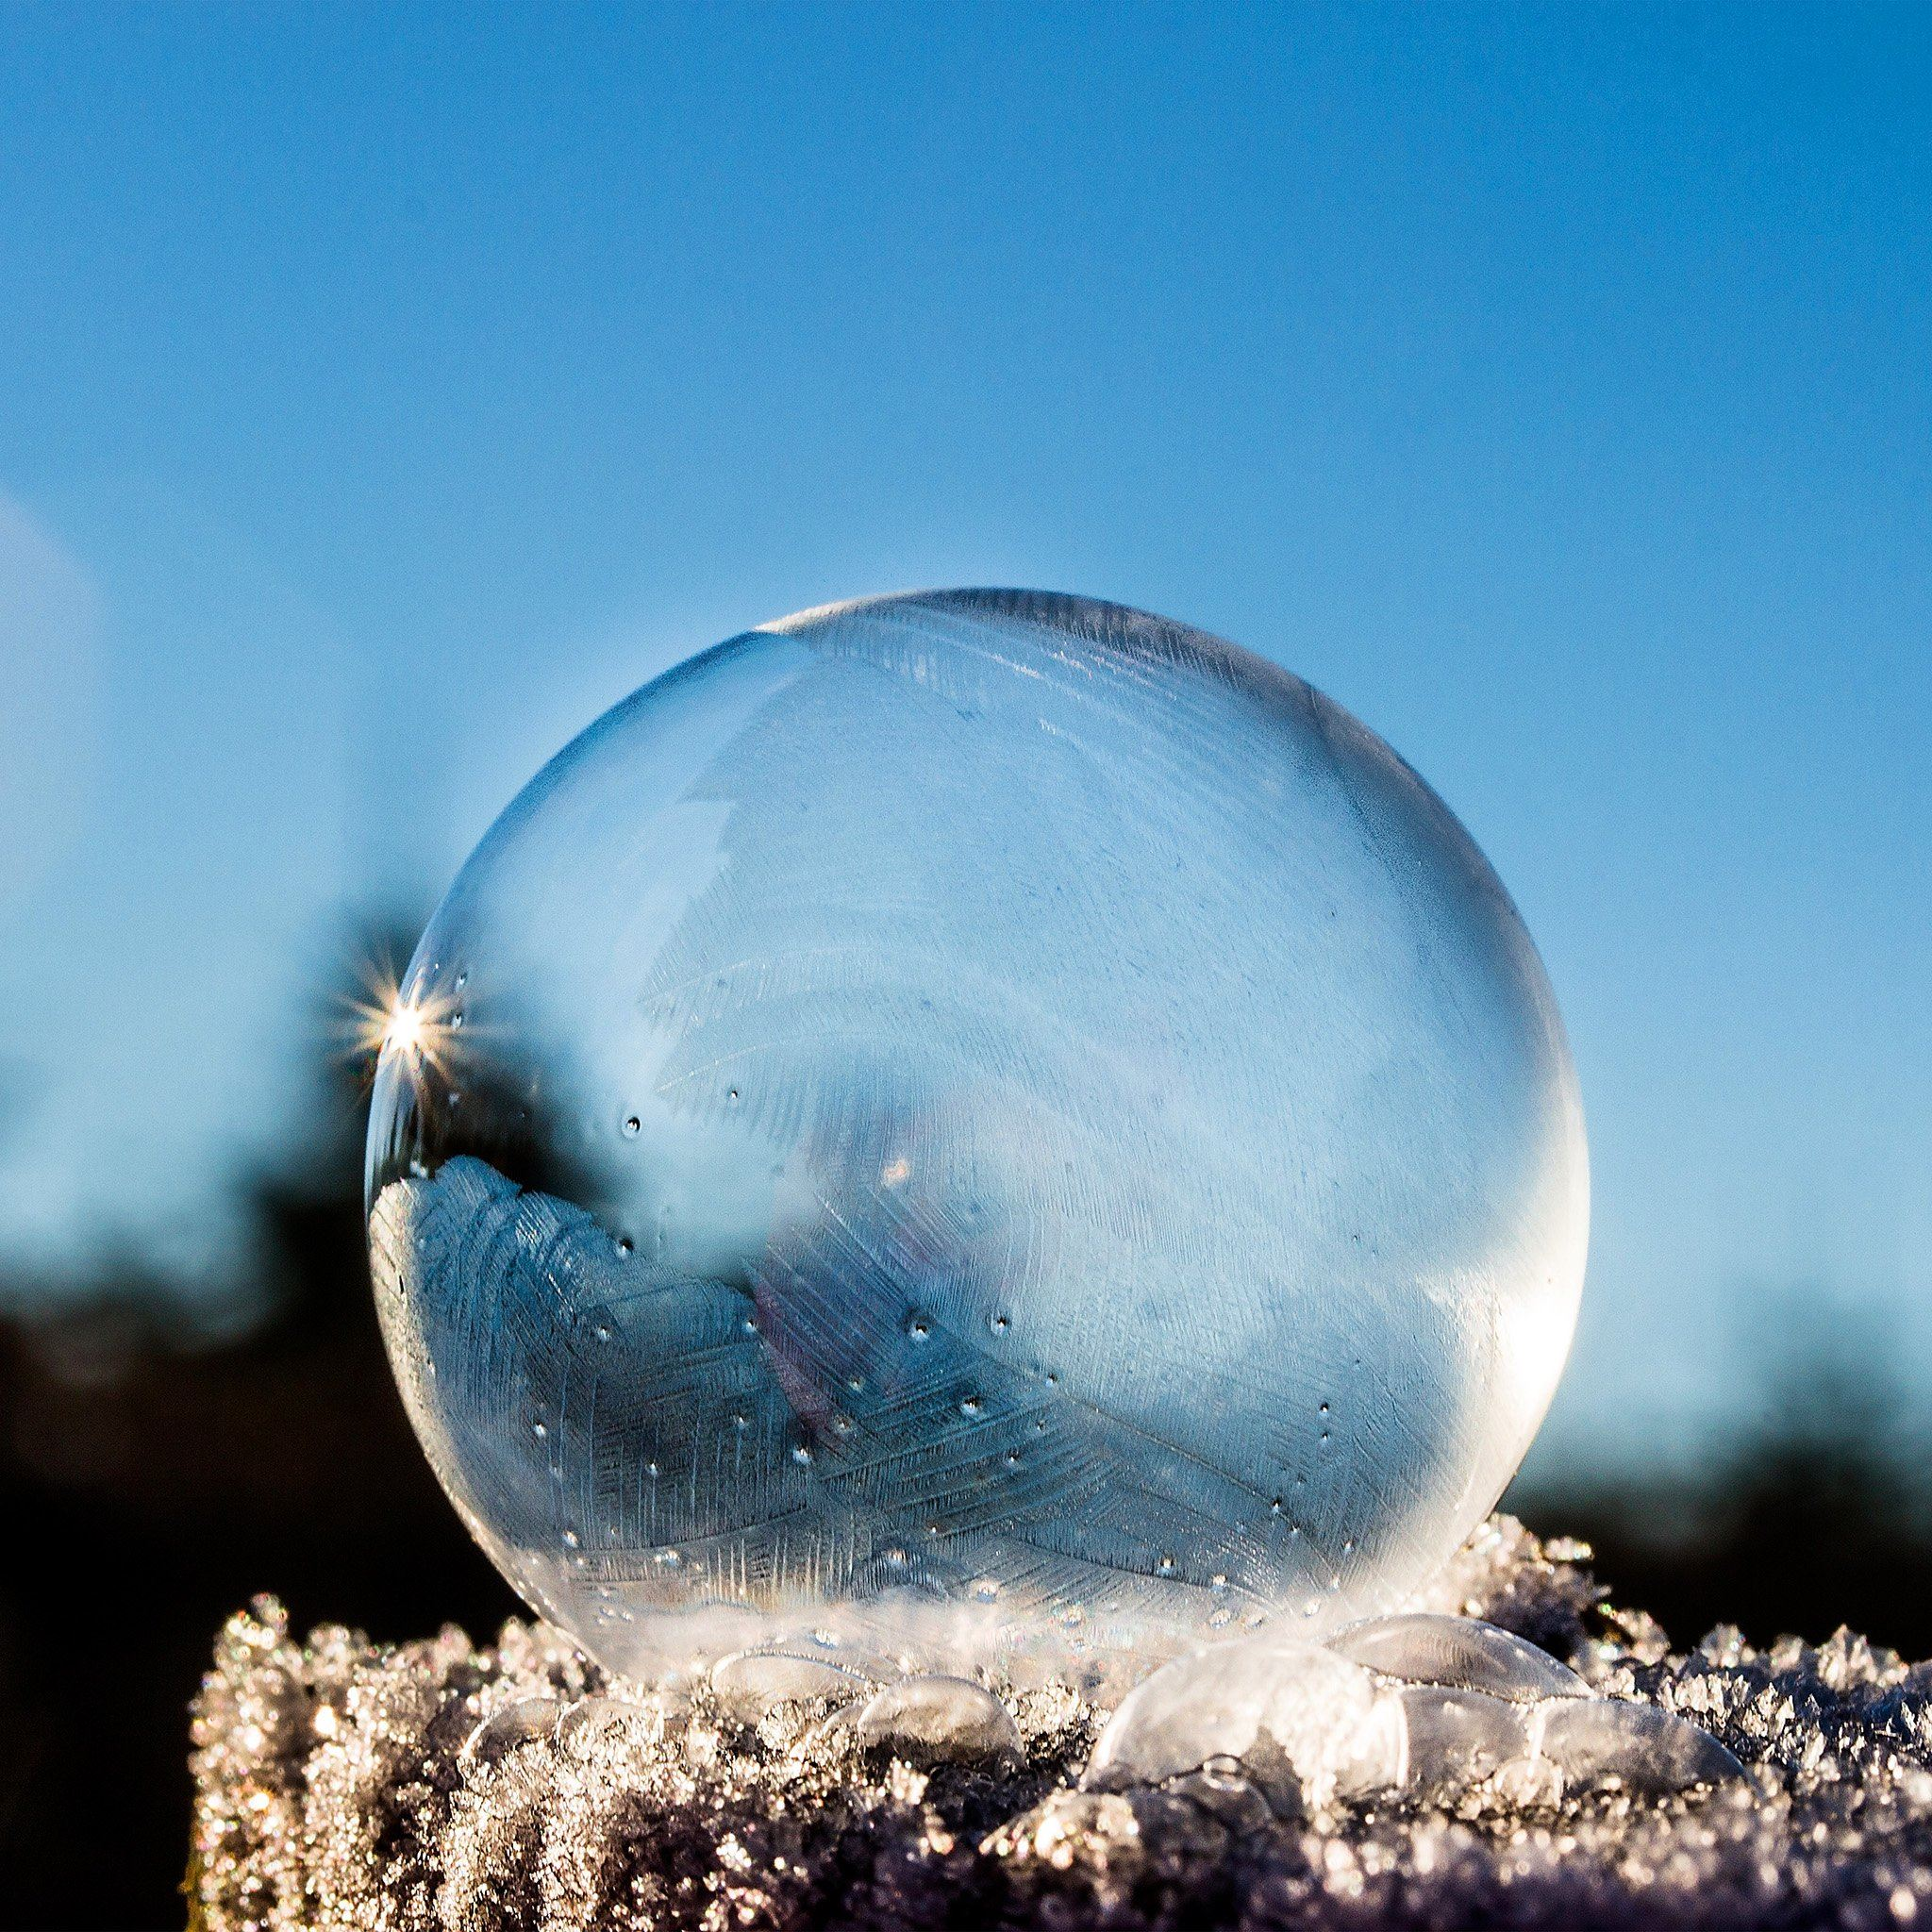 Pure Ice Bubble Sky iPad Air wallpaper